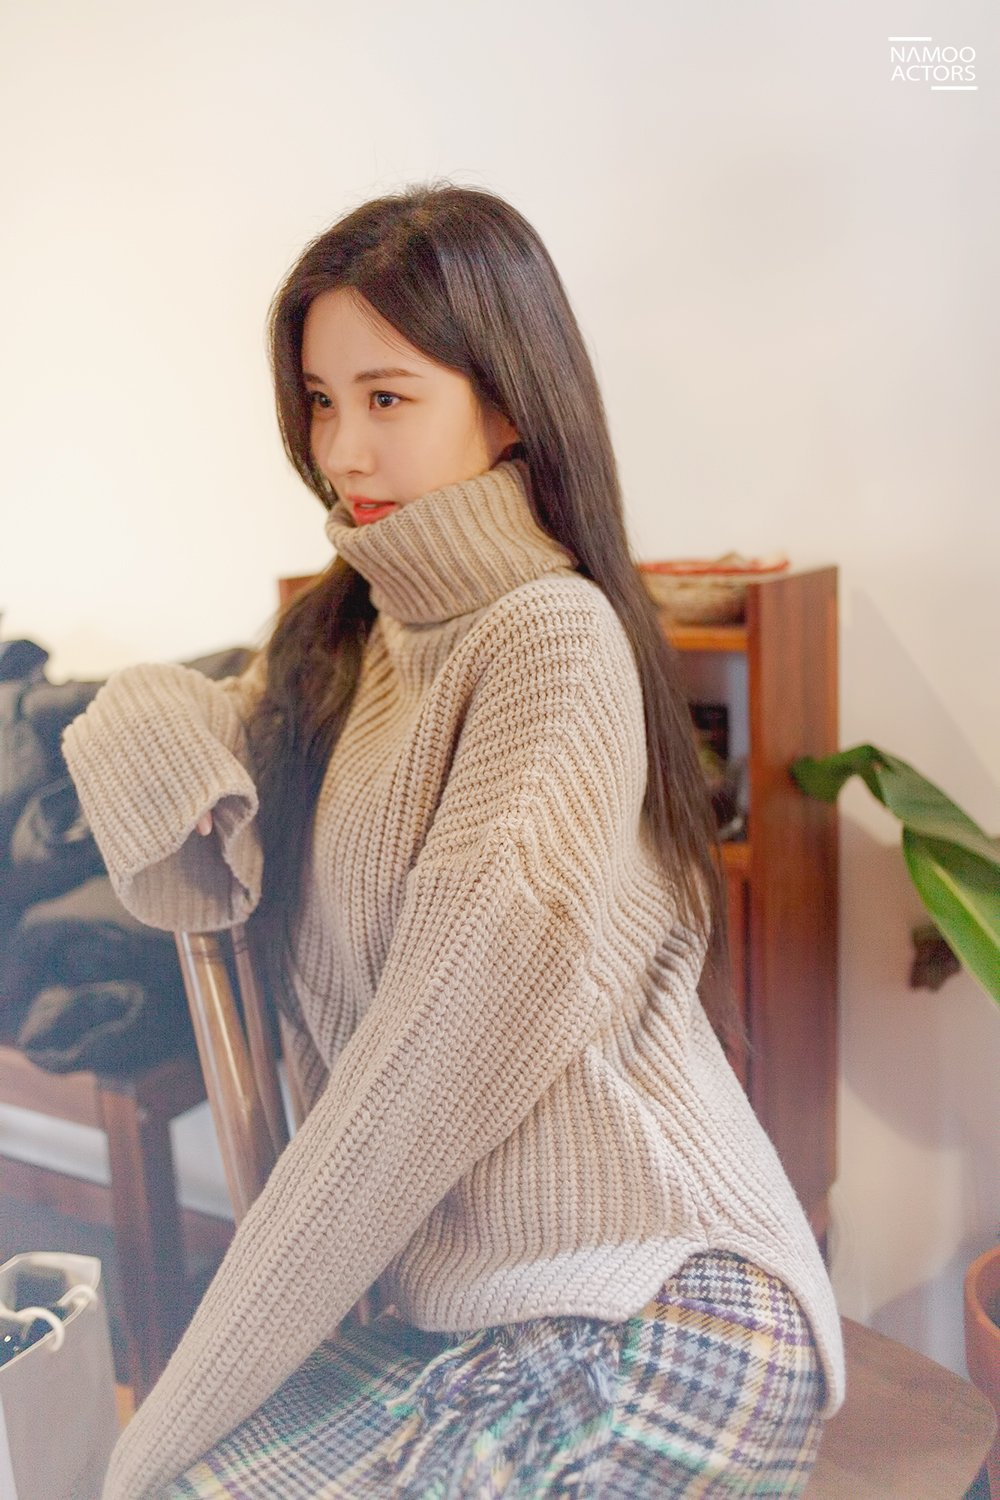 Behind-the-Photos of SeoHyun 2020 Season's Greetings Photo ...